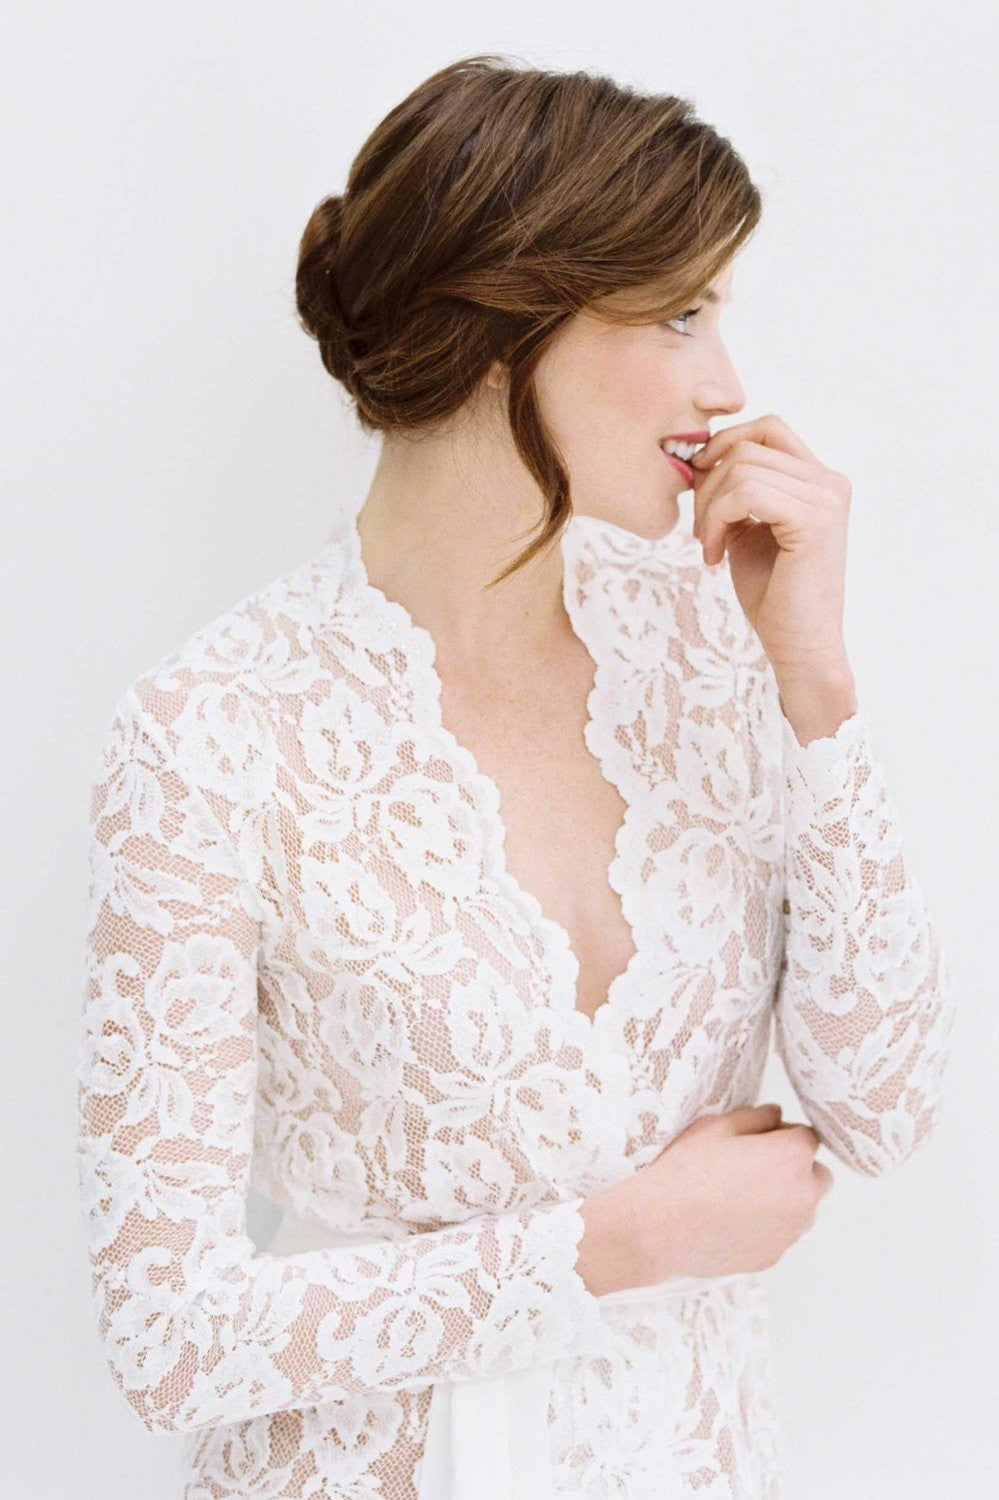 Lauren Stretch French Lace Robe in ivory